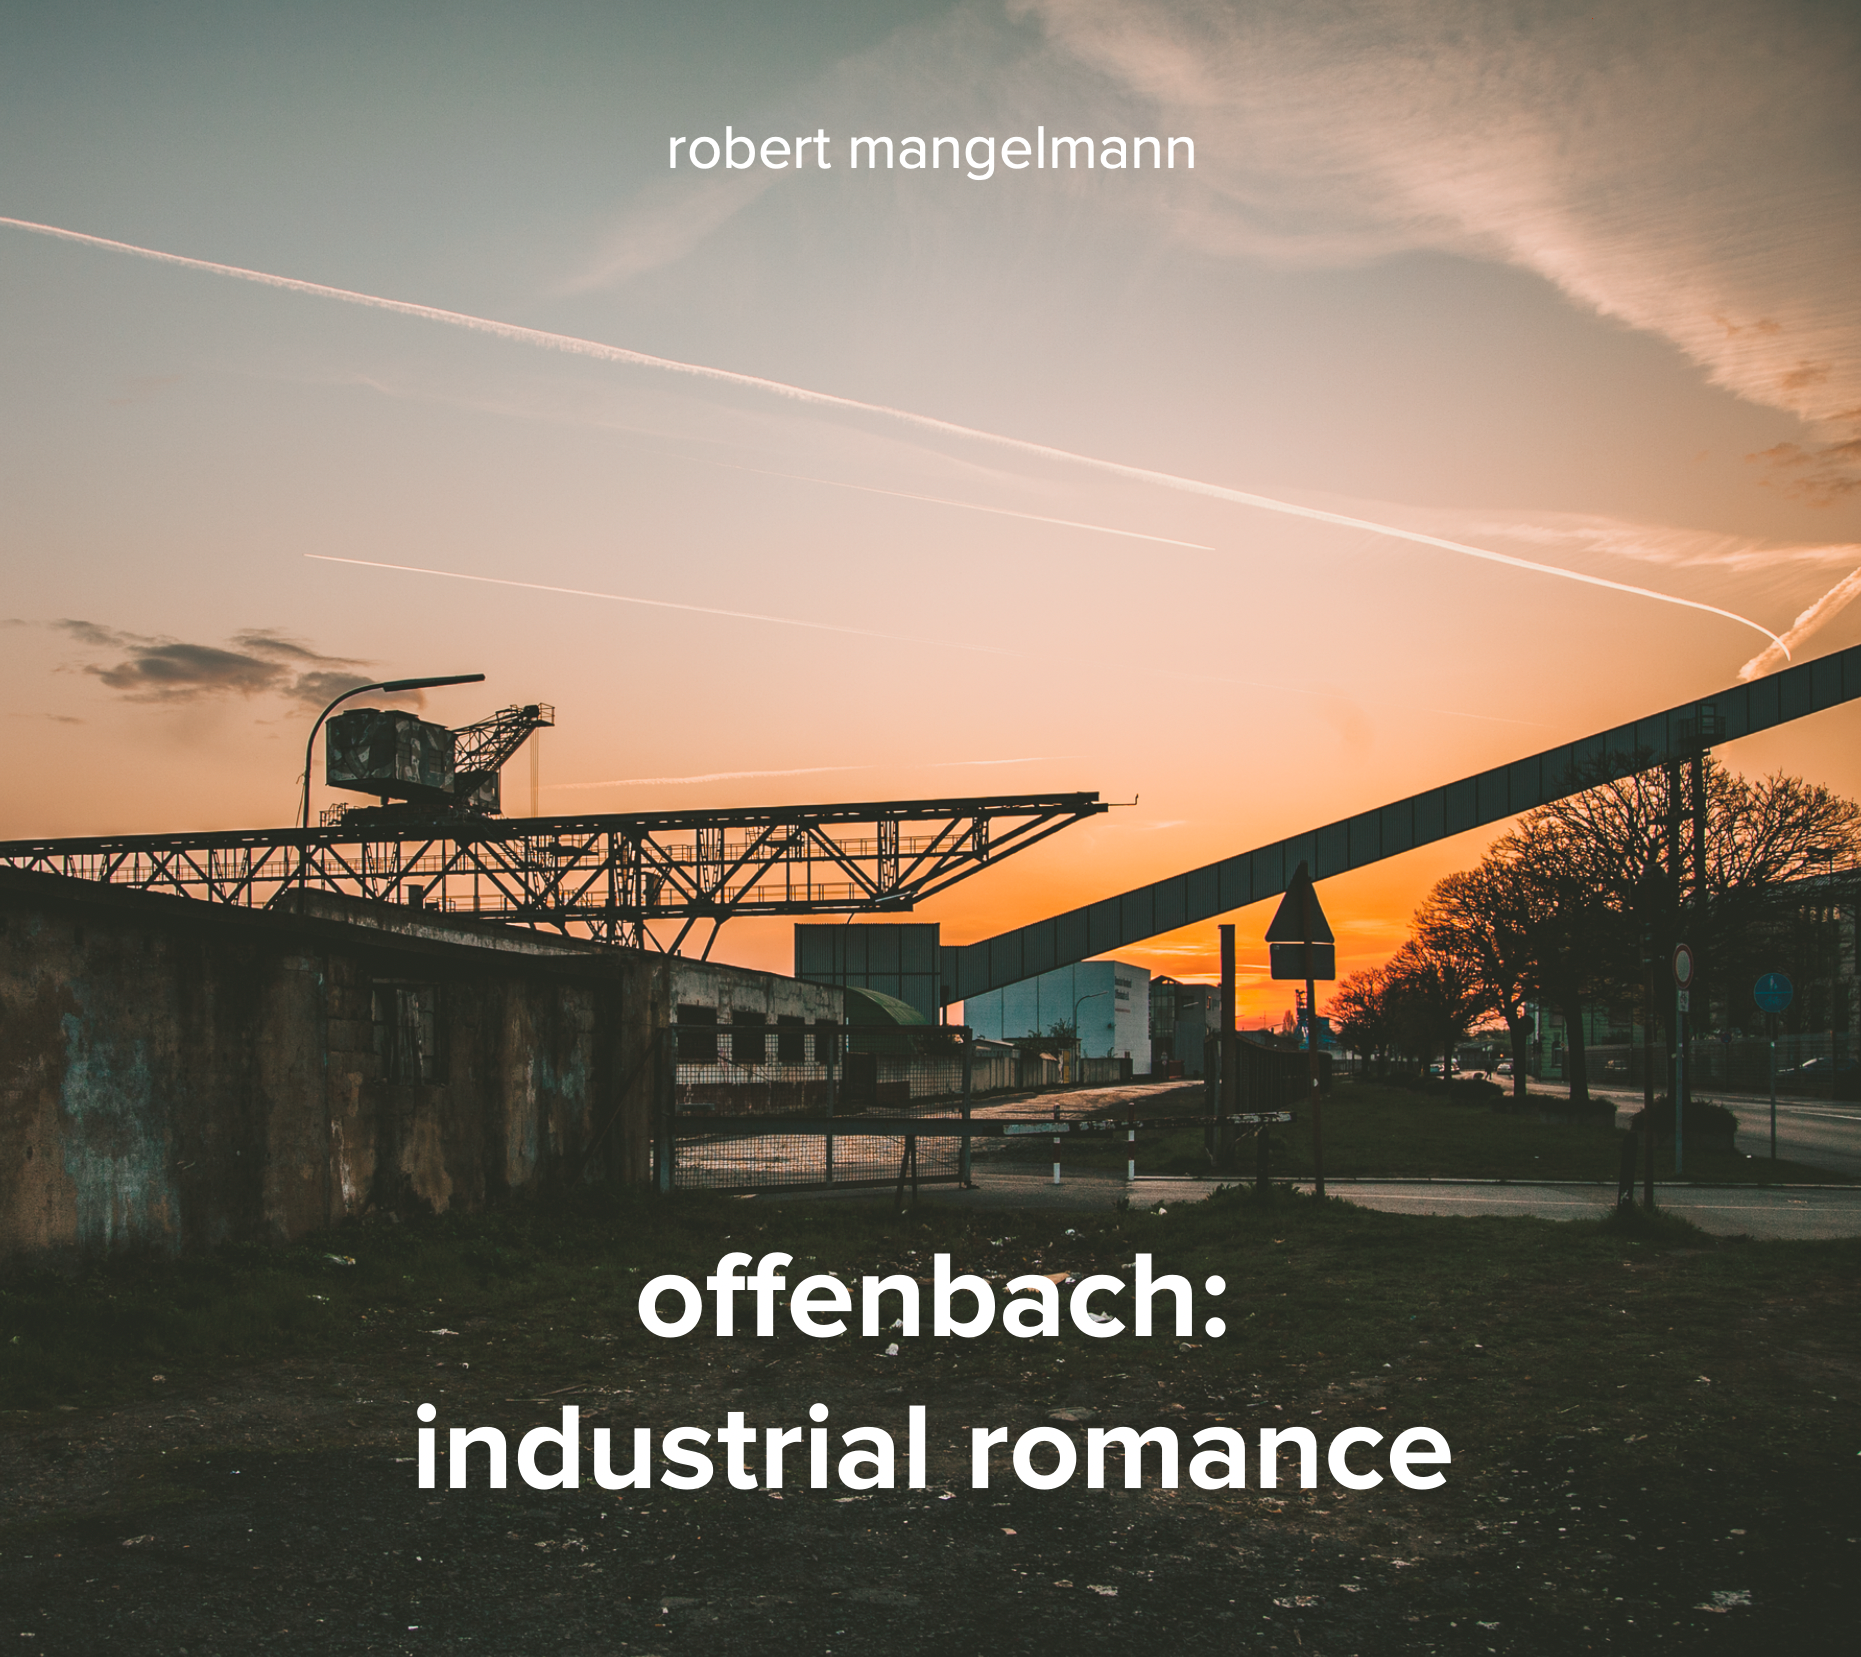 offenbach: industrial romance - title